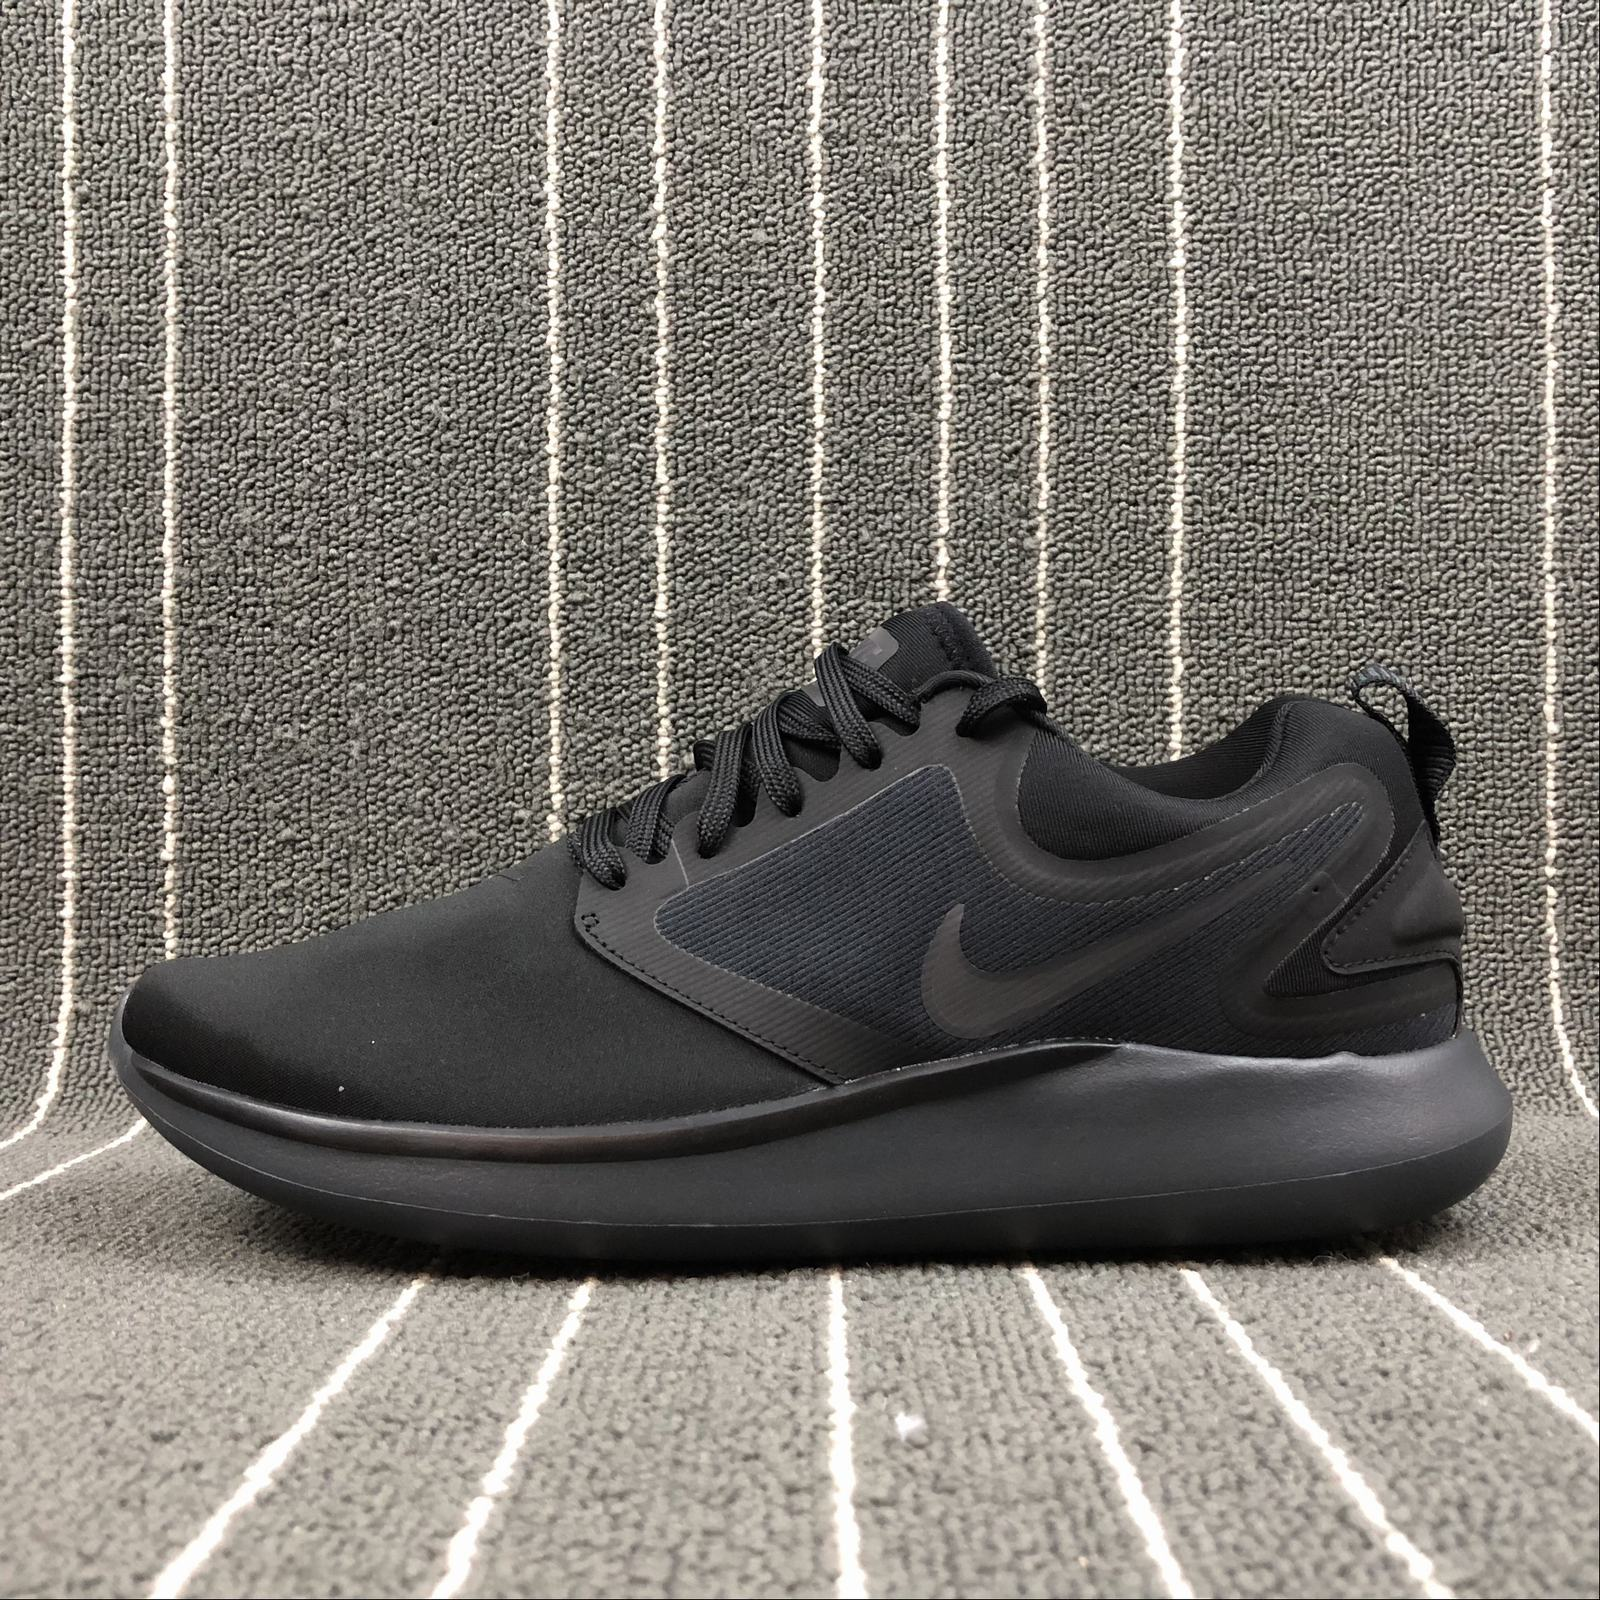 Nike Lunarsolo 2017 Men